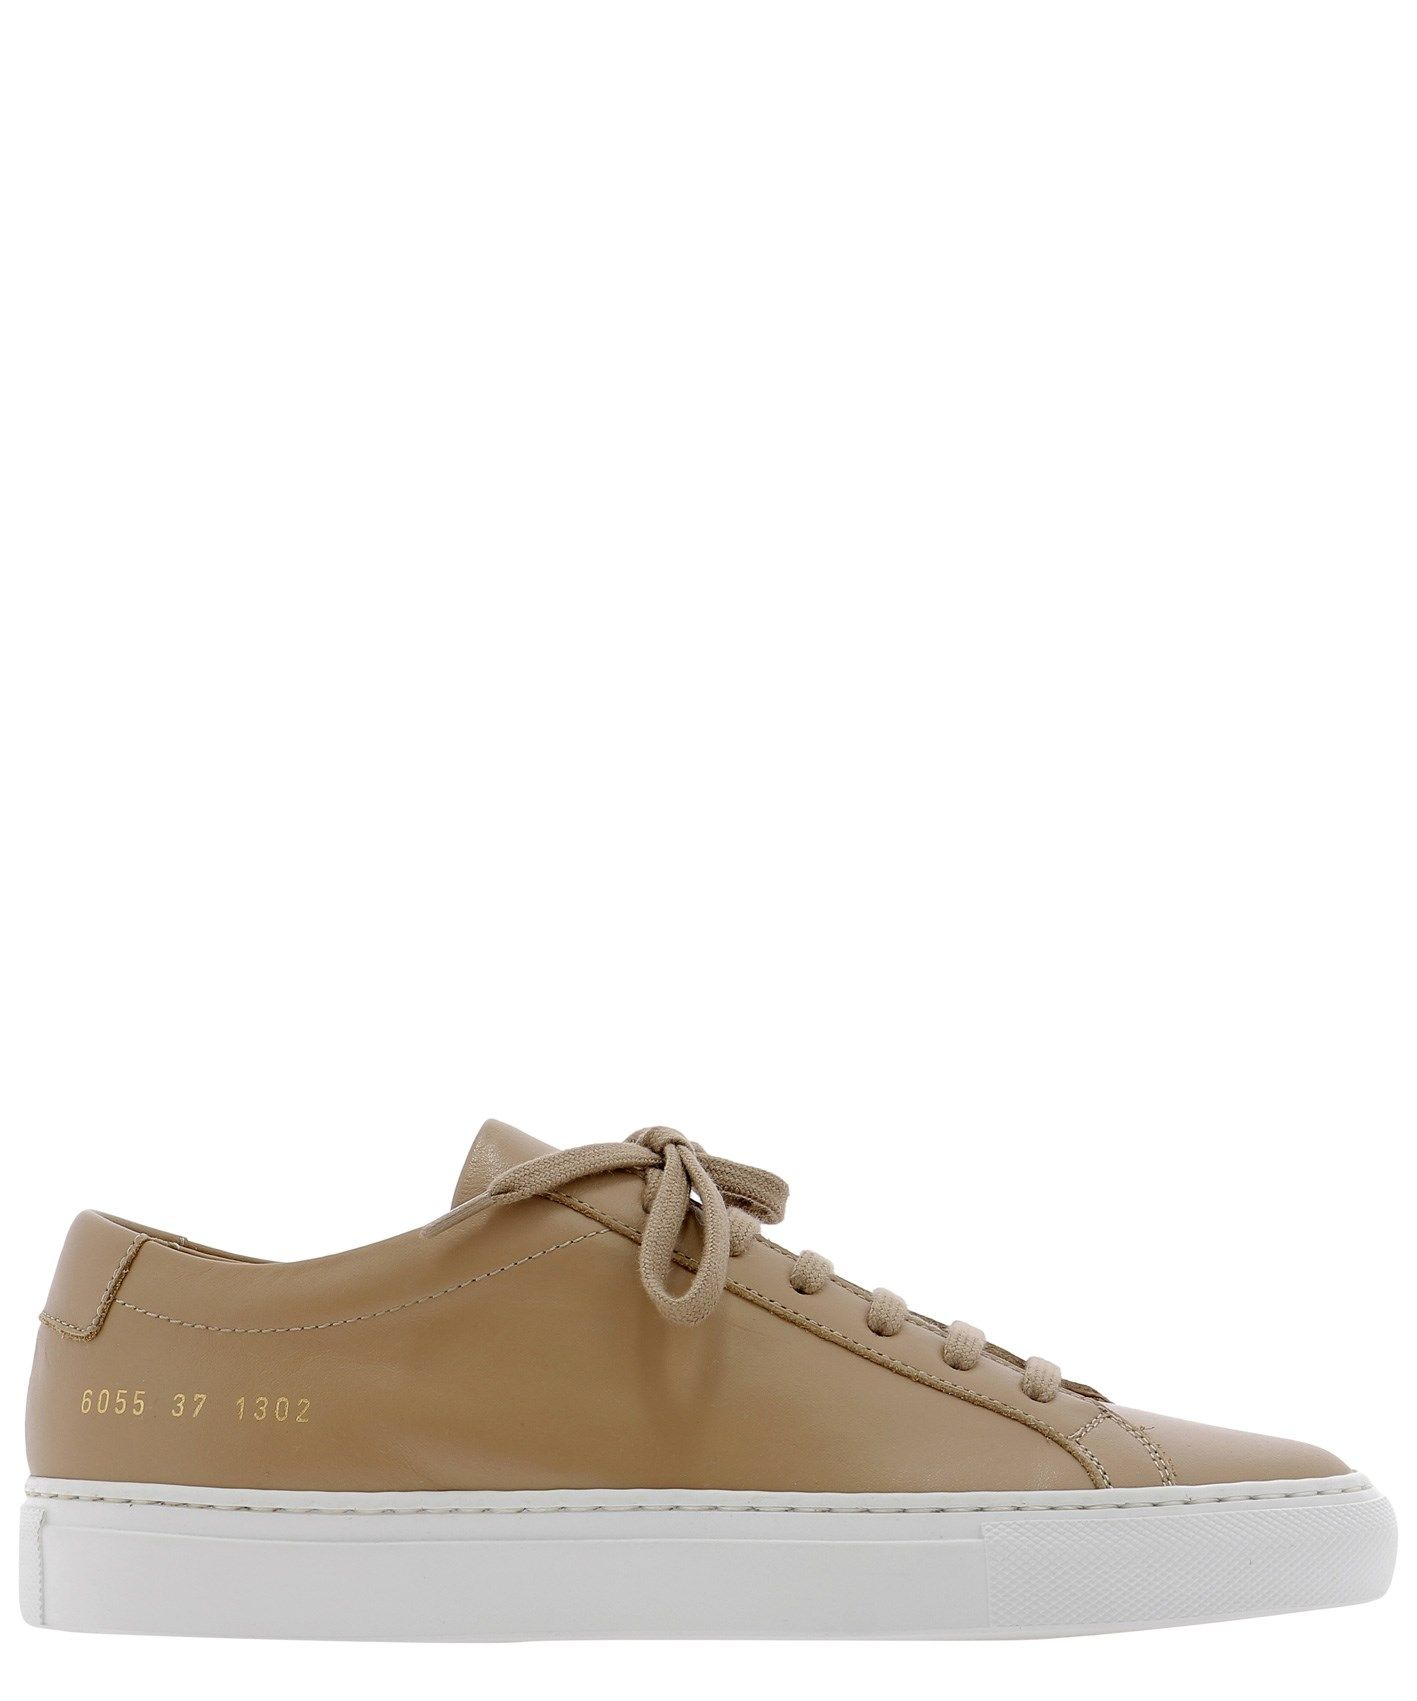 Common Projects COMMON PROJECTS WOMEN'S 60551302 BEIGE OTHER MATERIALS SNEAKERS